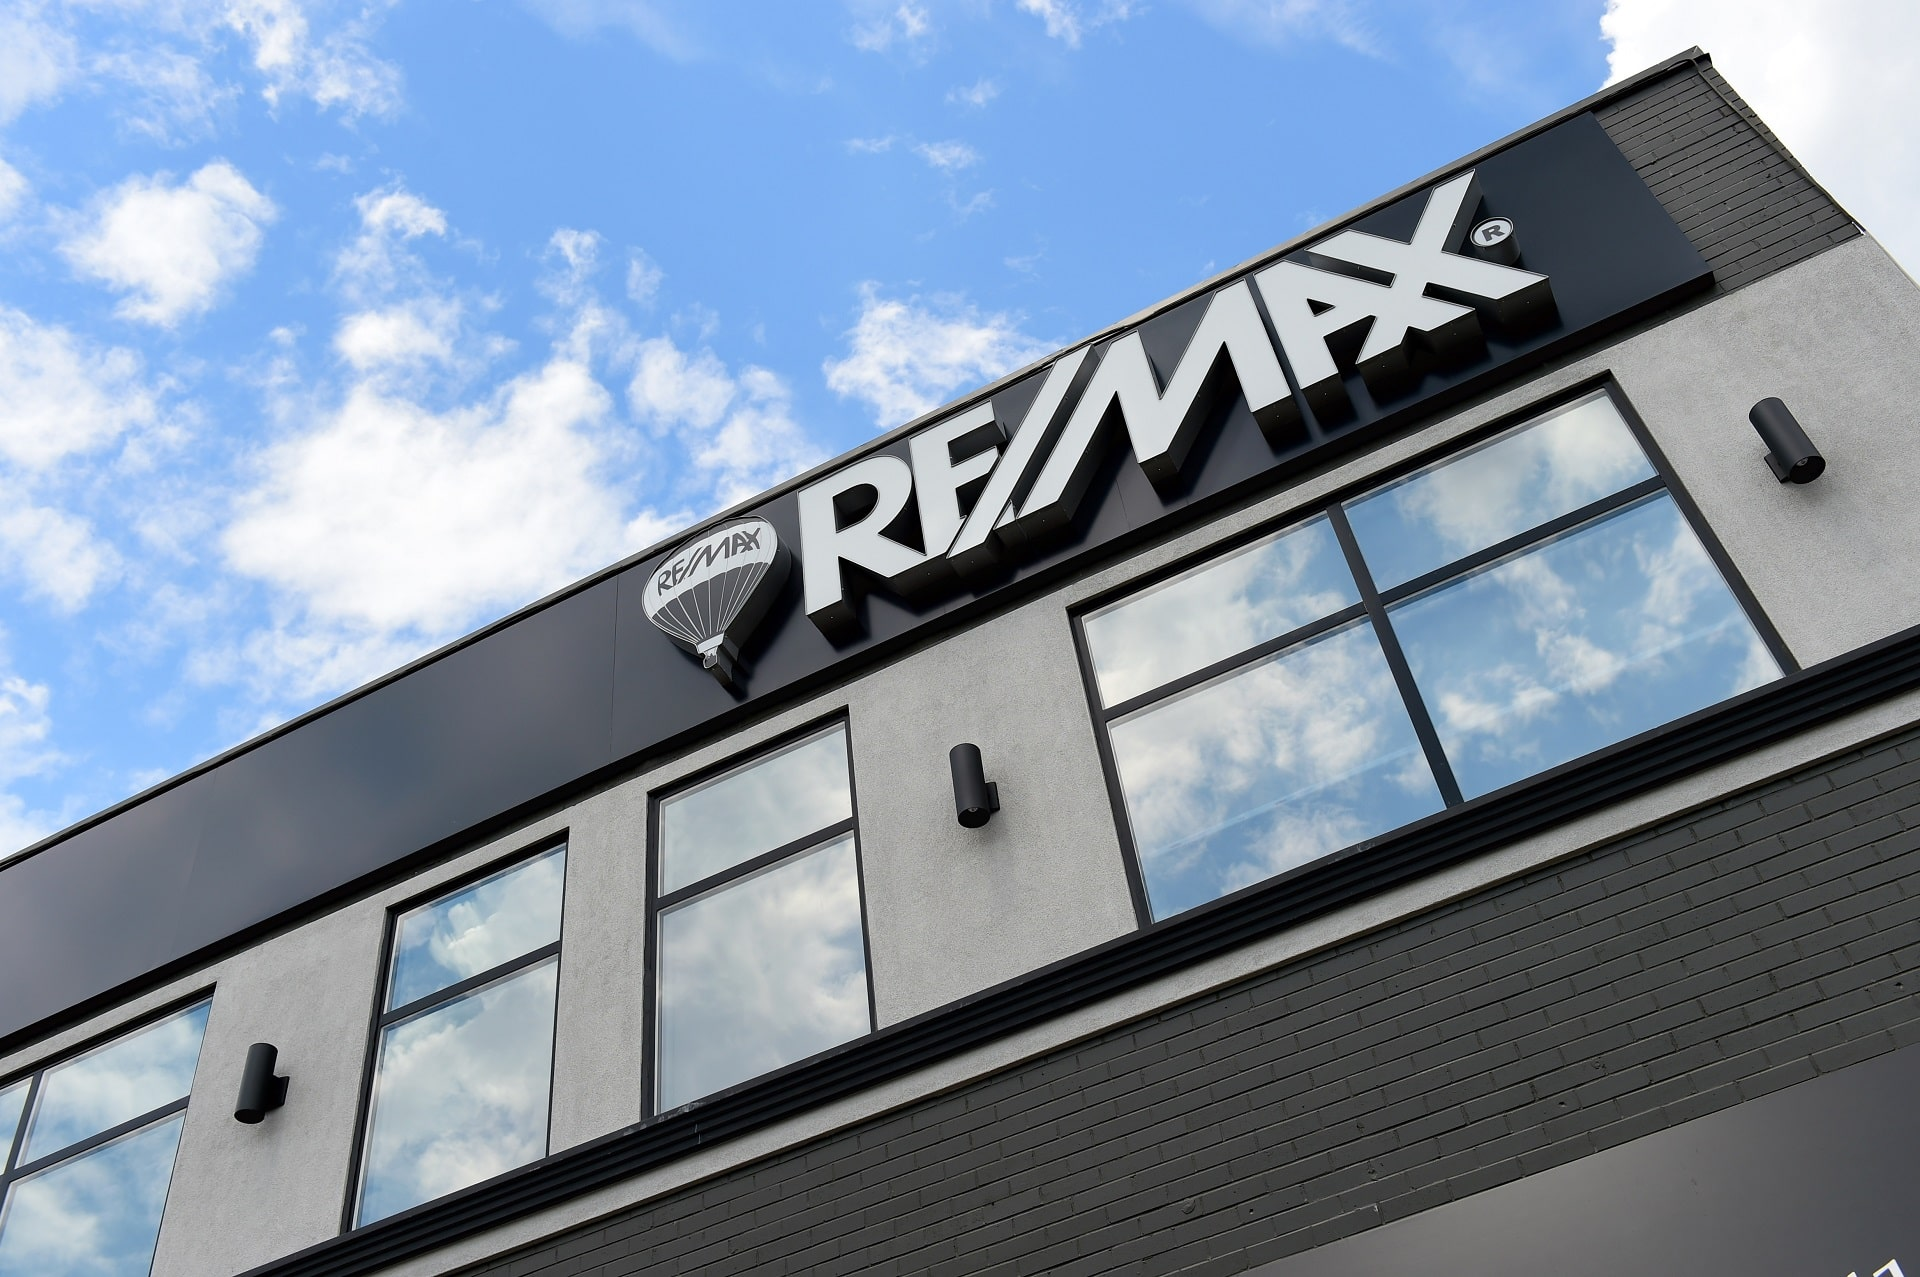 Remax Channel letters